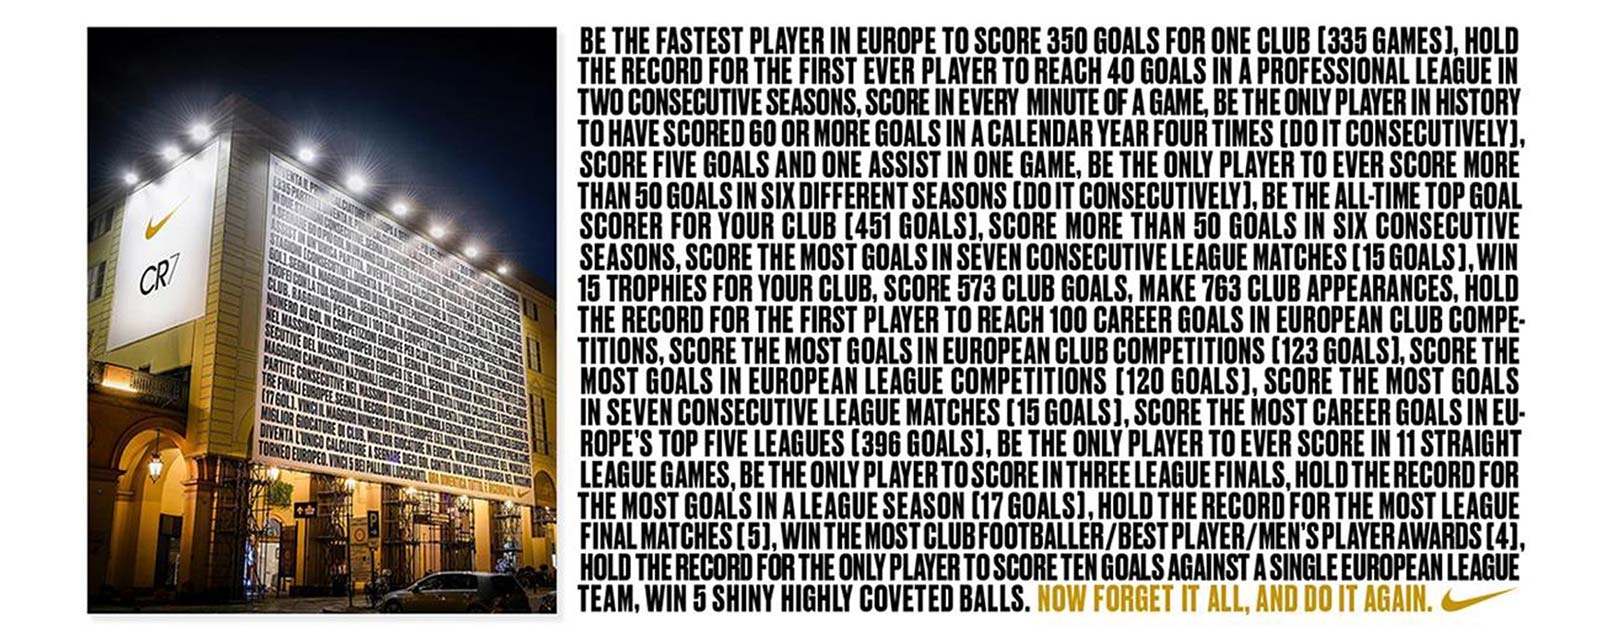 Picture of Nike billboard along with the text of his accomplishments